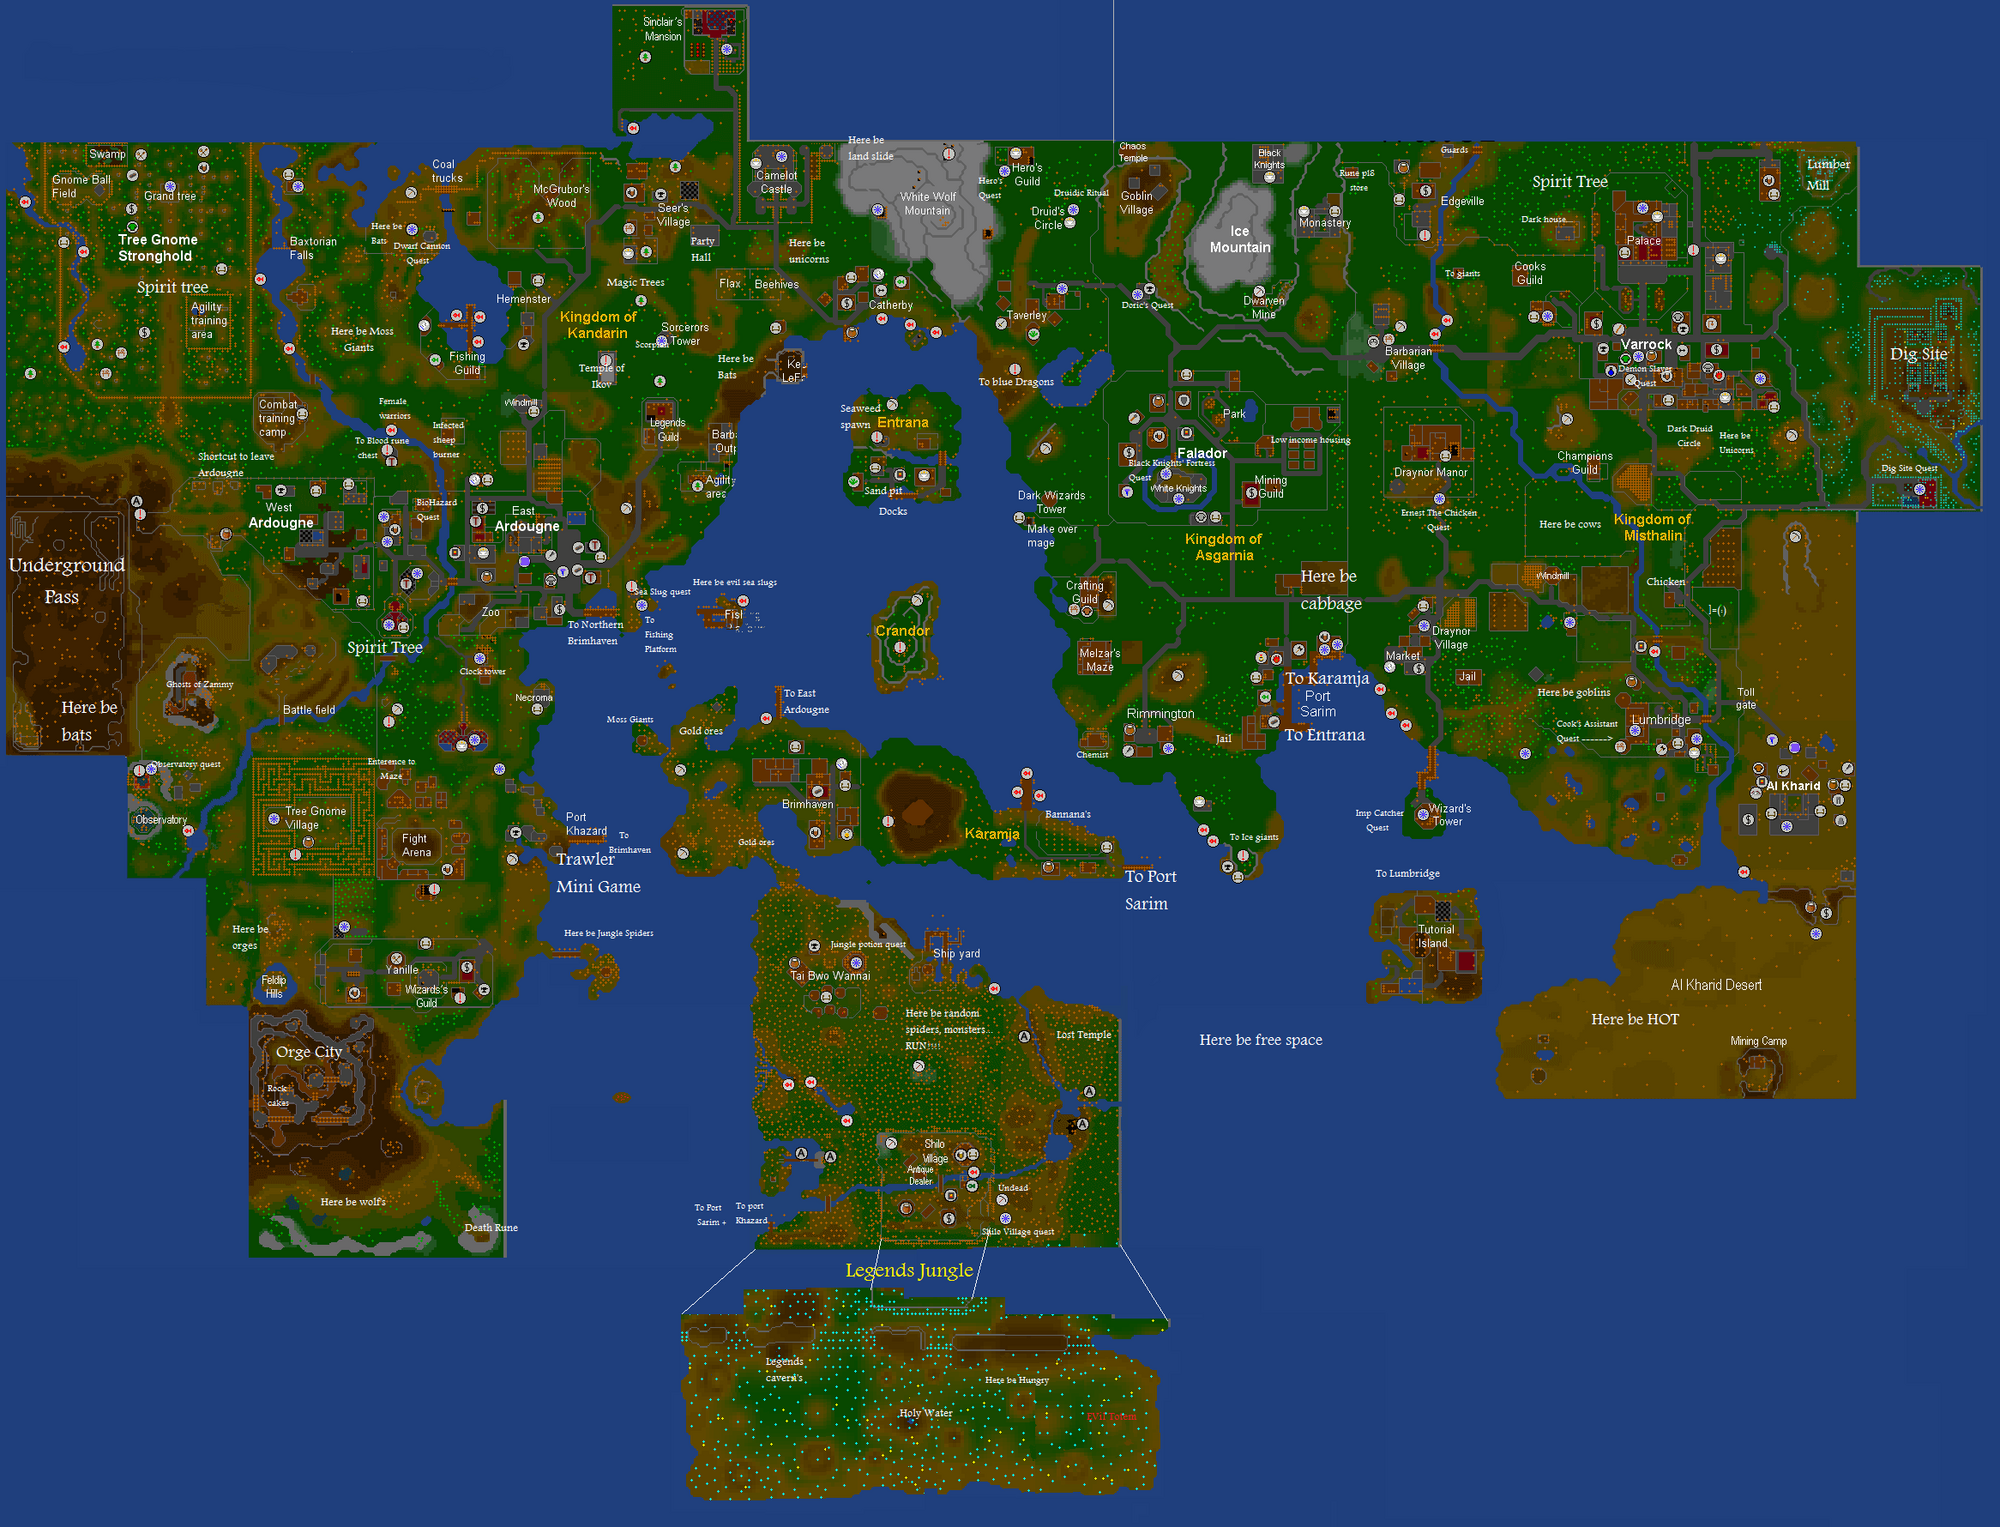 runescape map world map runescape runescape world map full  - image august mappng runescape wiki fandom powered by wikia